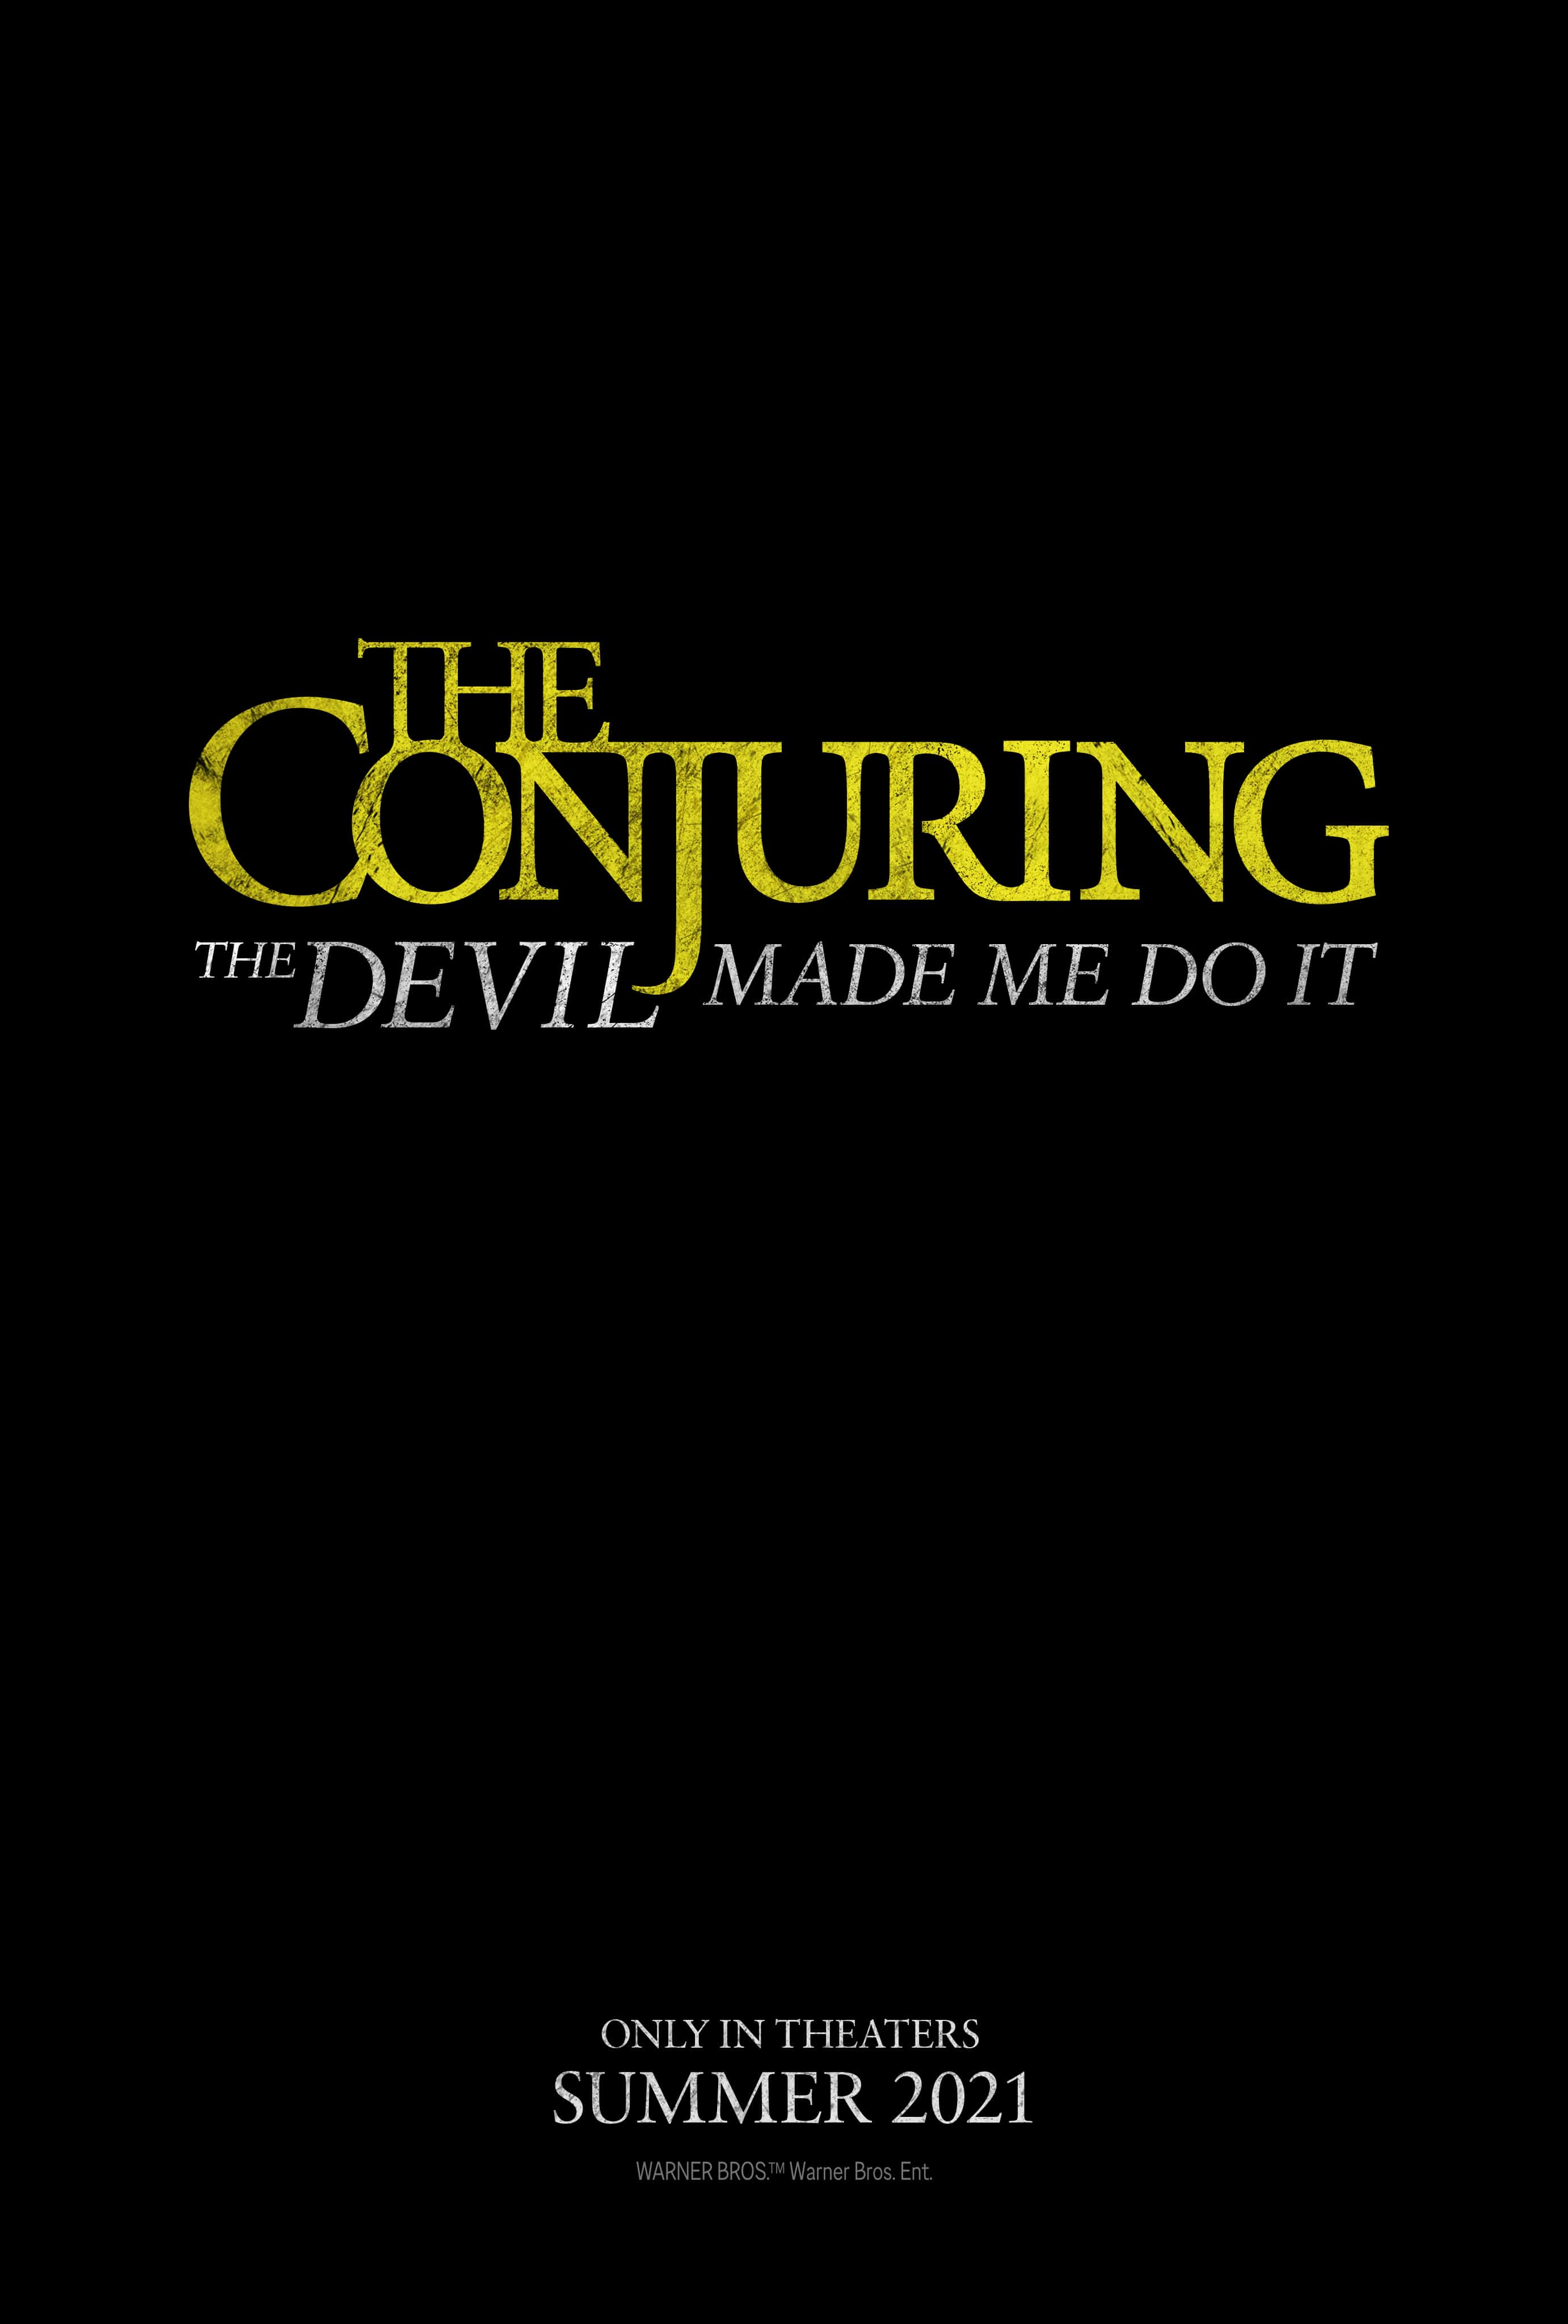 Trailer Alert! The Conjuring III